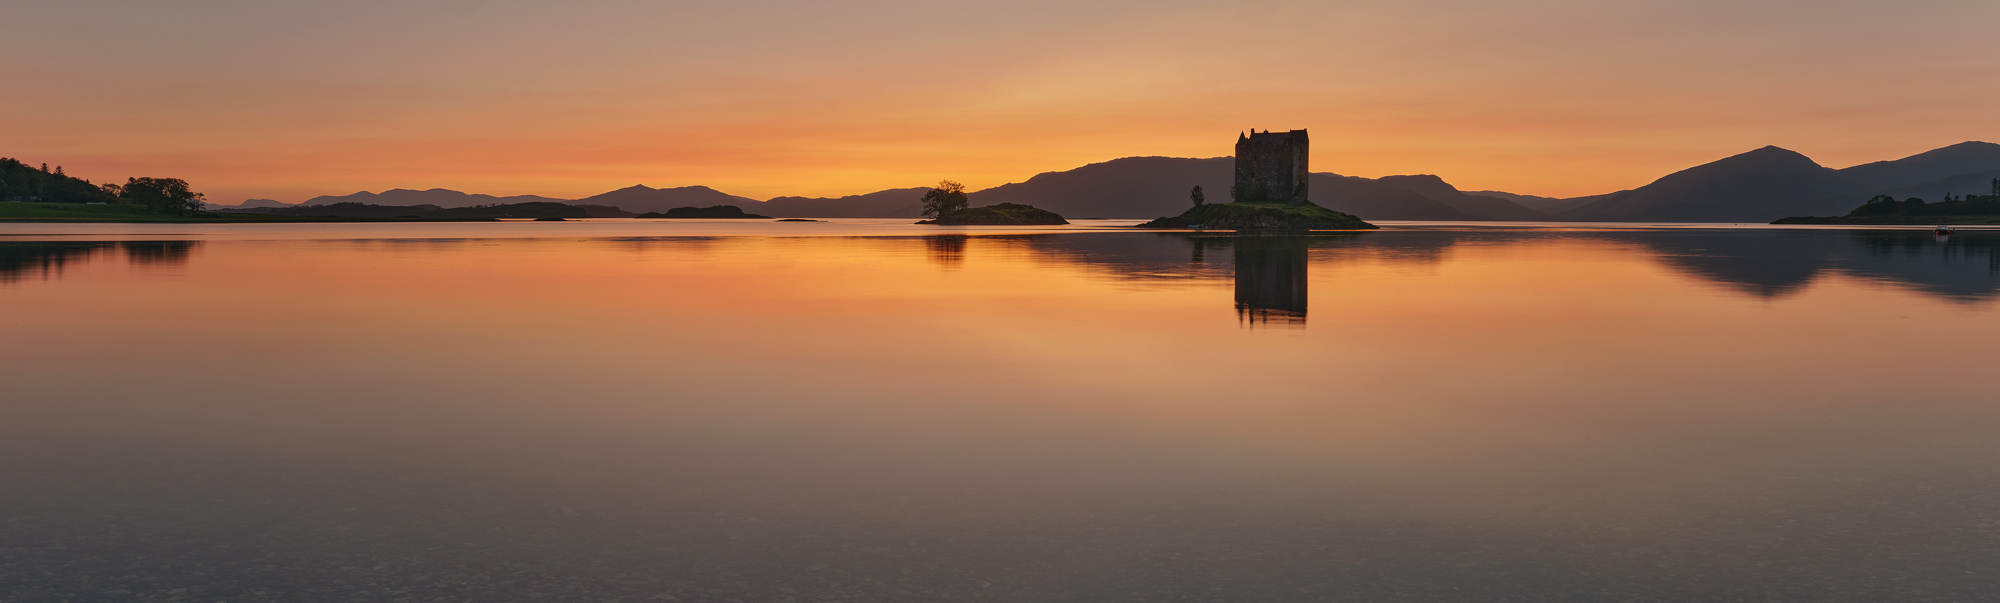 I rarely create stitched panoramic images but the extent of this superb sunset across the calm water on Appin Bay on this extremely...